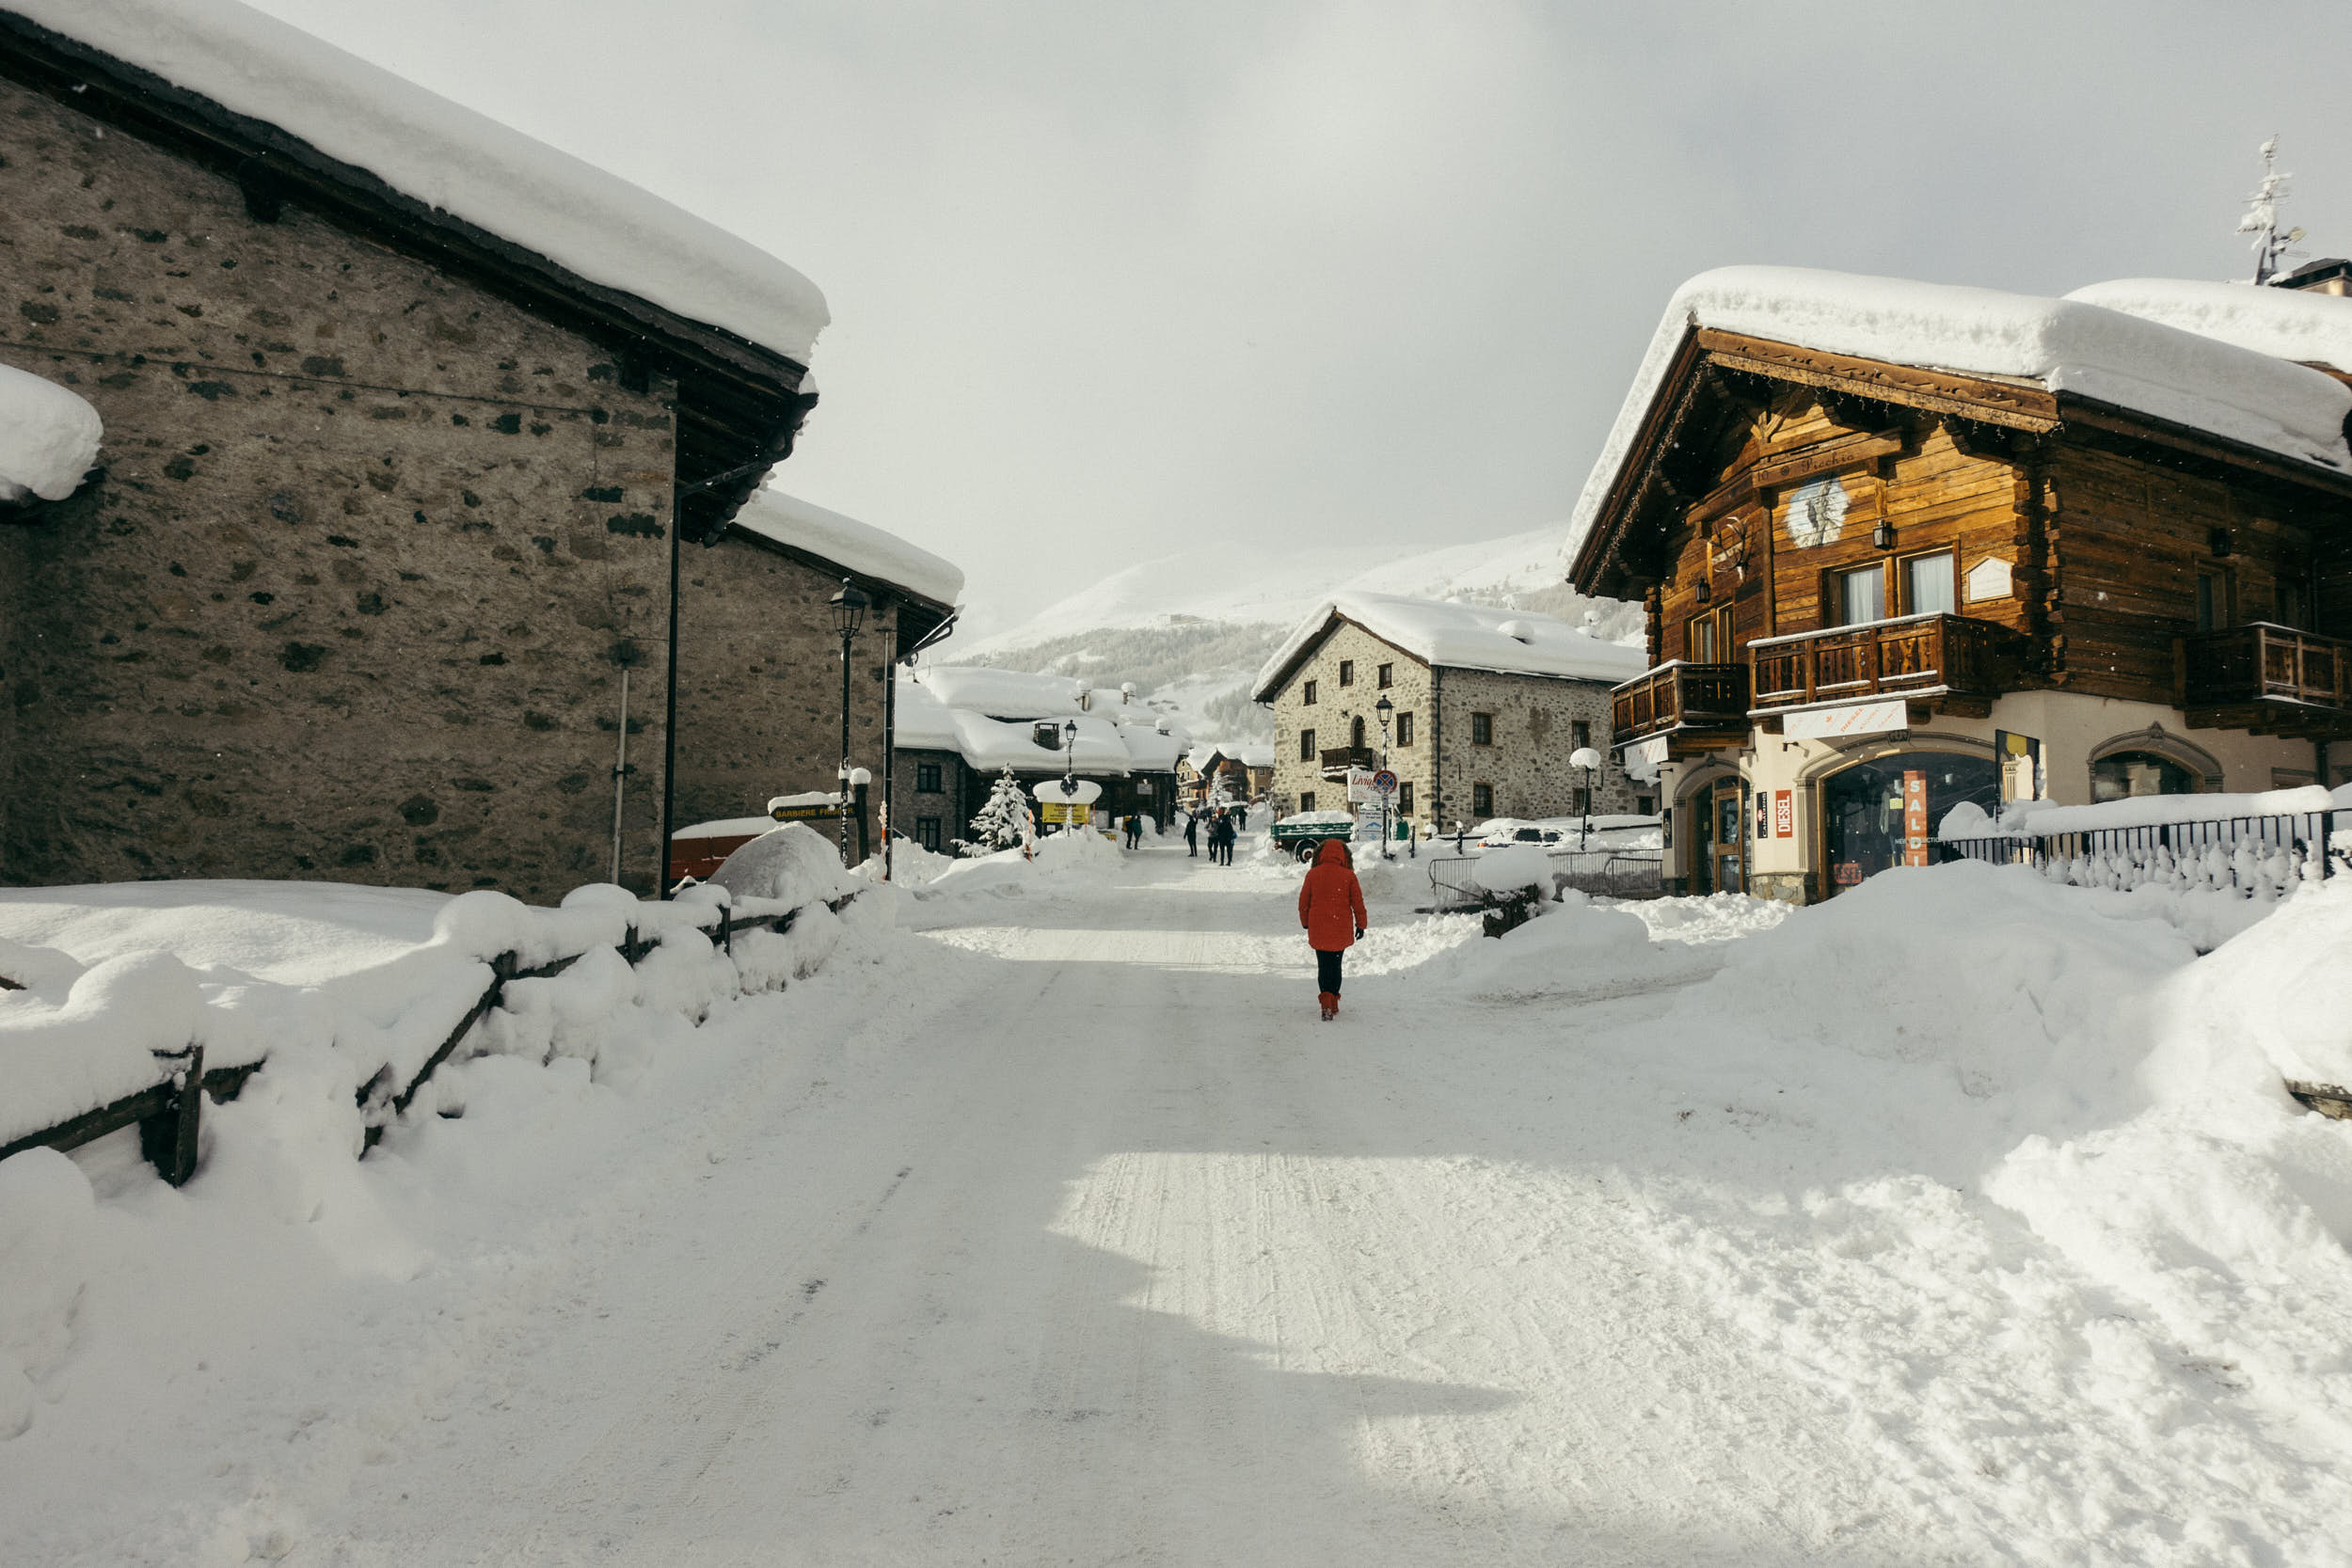 Beautiful travel photography of a mountain village covered in snow.